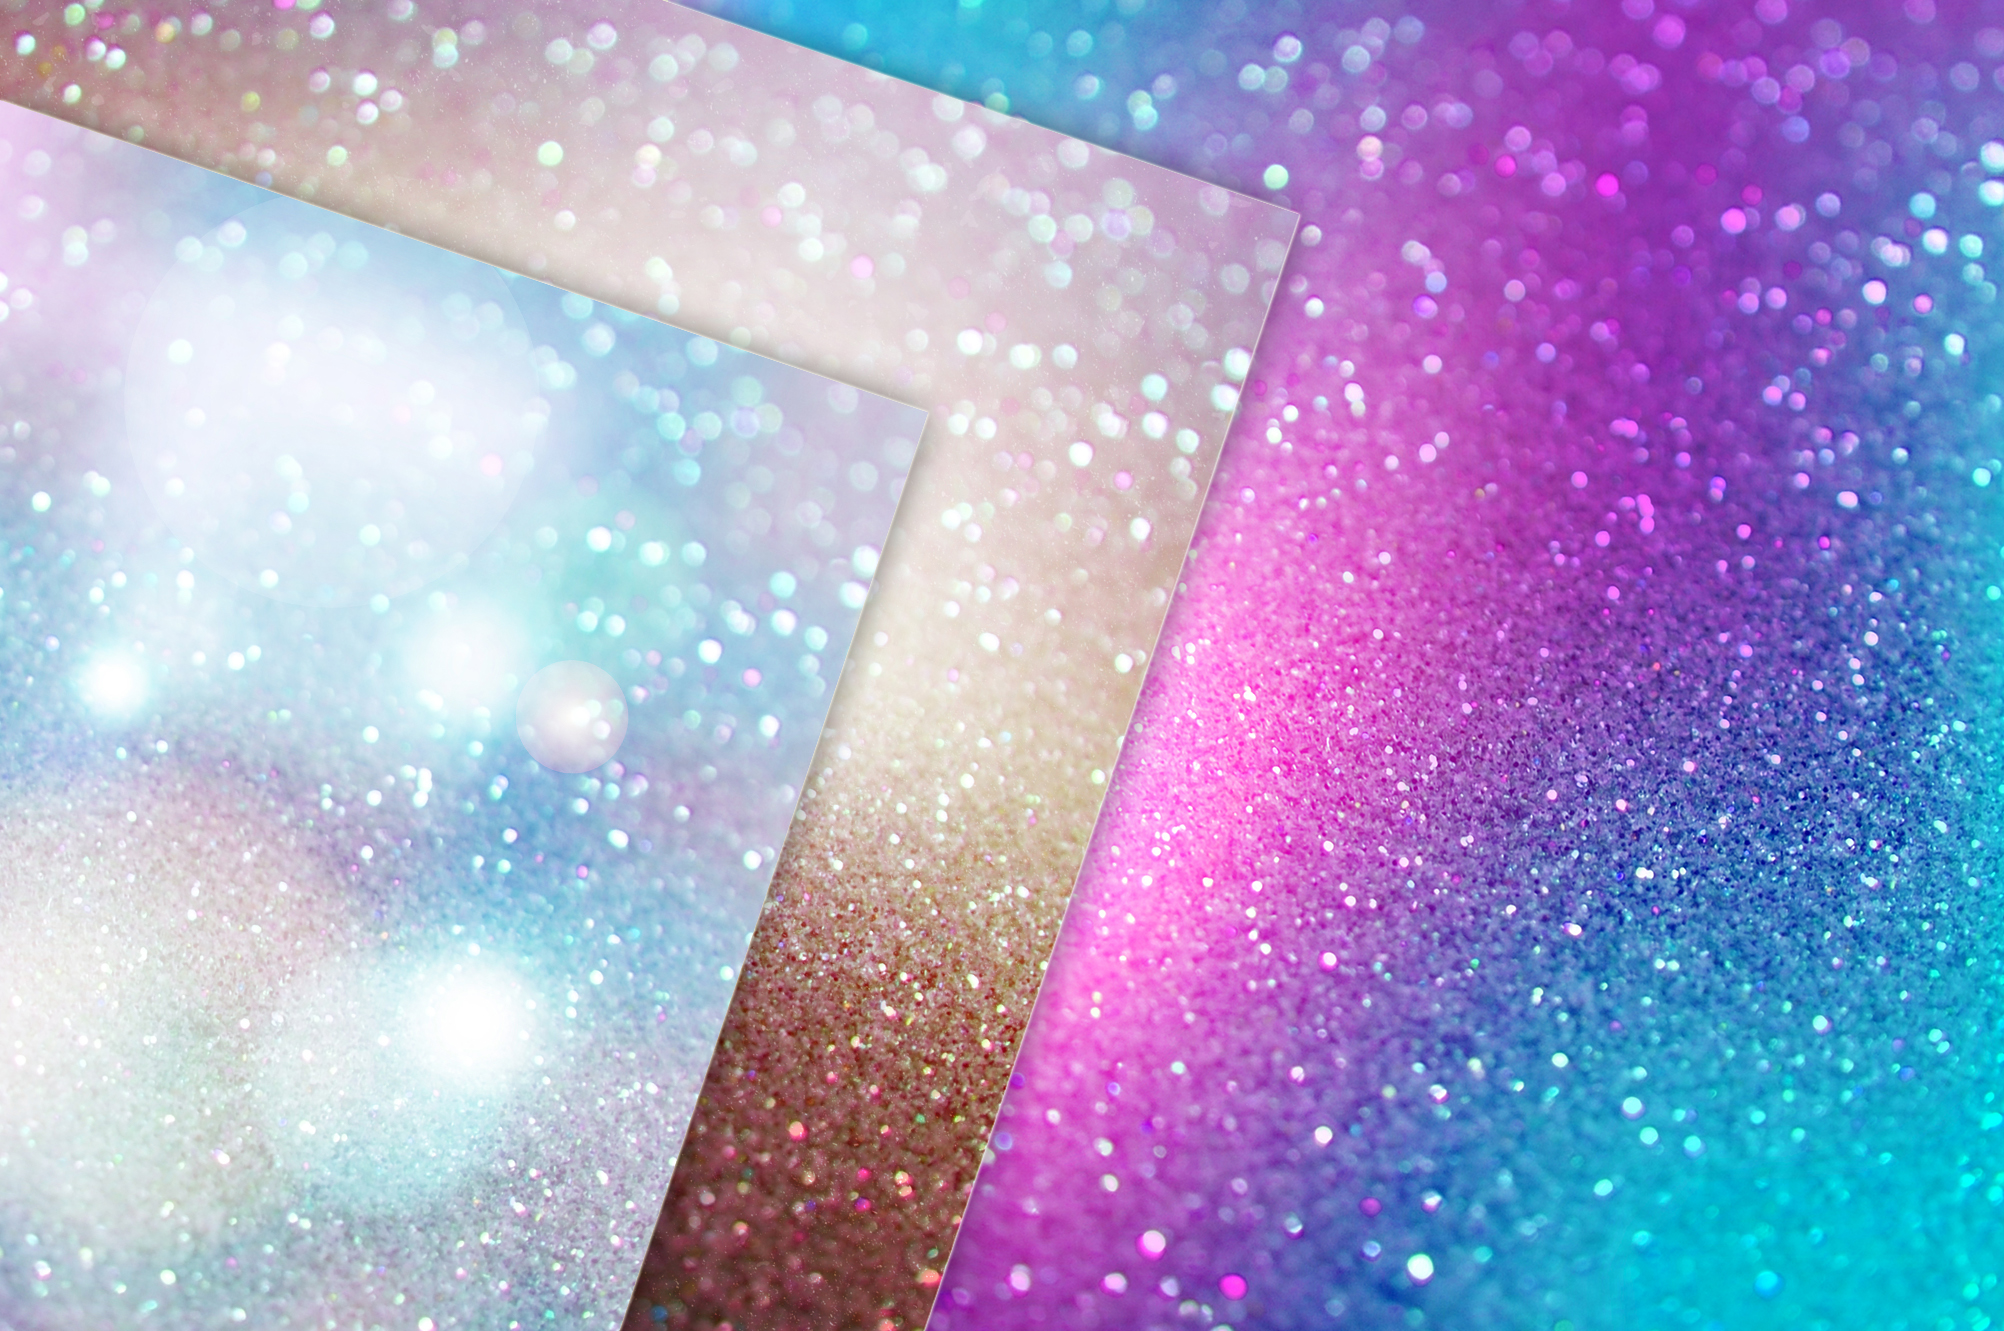 Iridescent 95 Glitter Textures Holographic Backgrounds example image 10